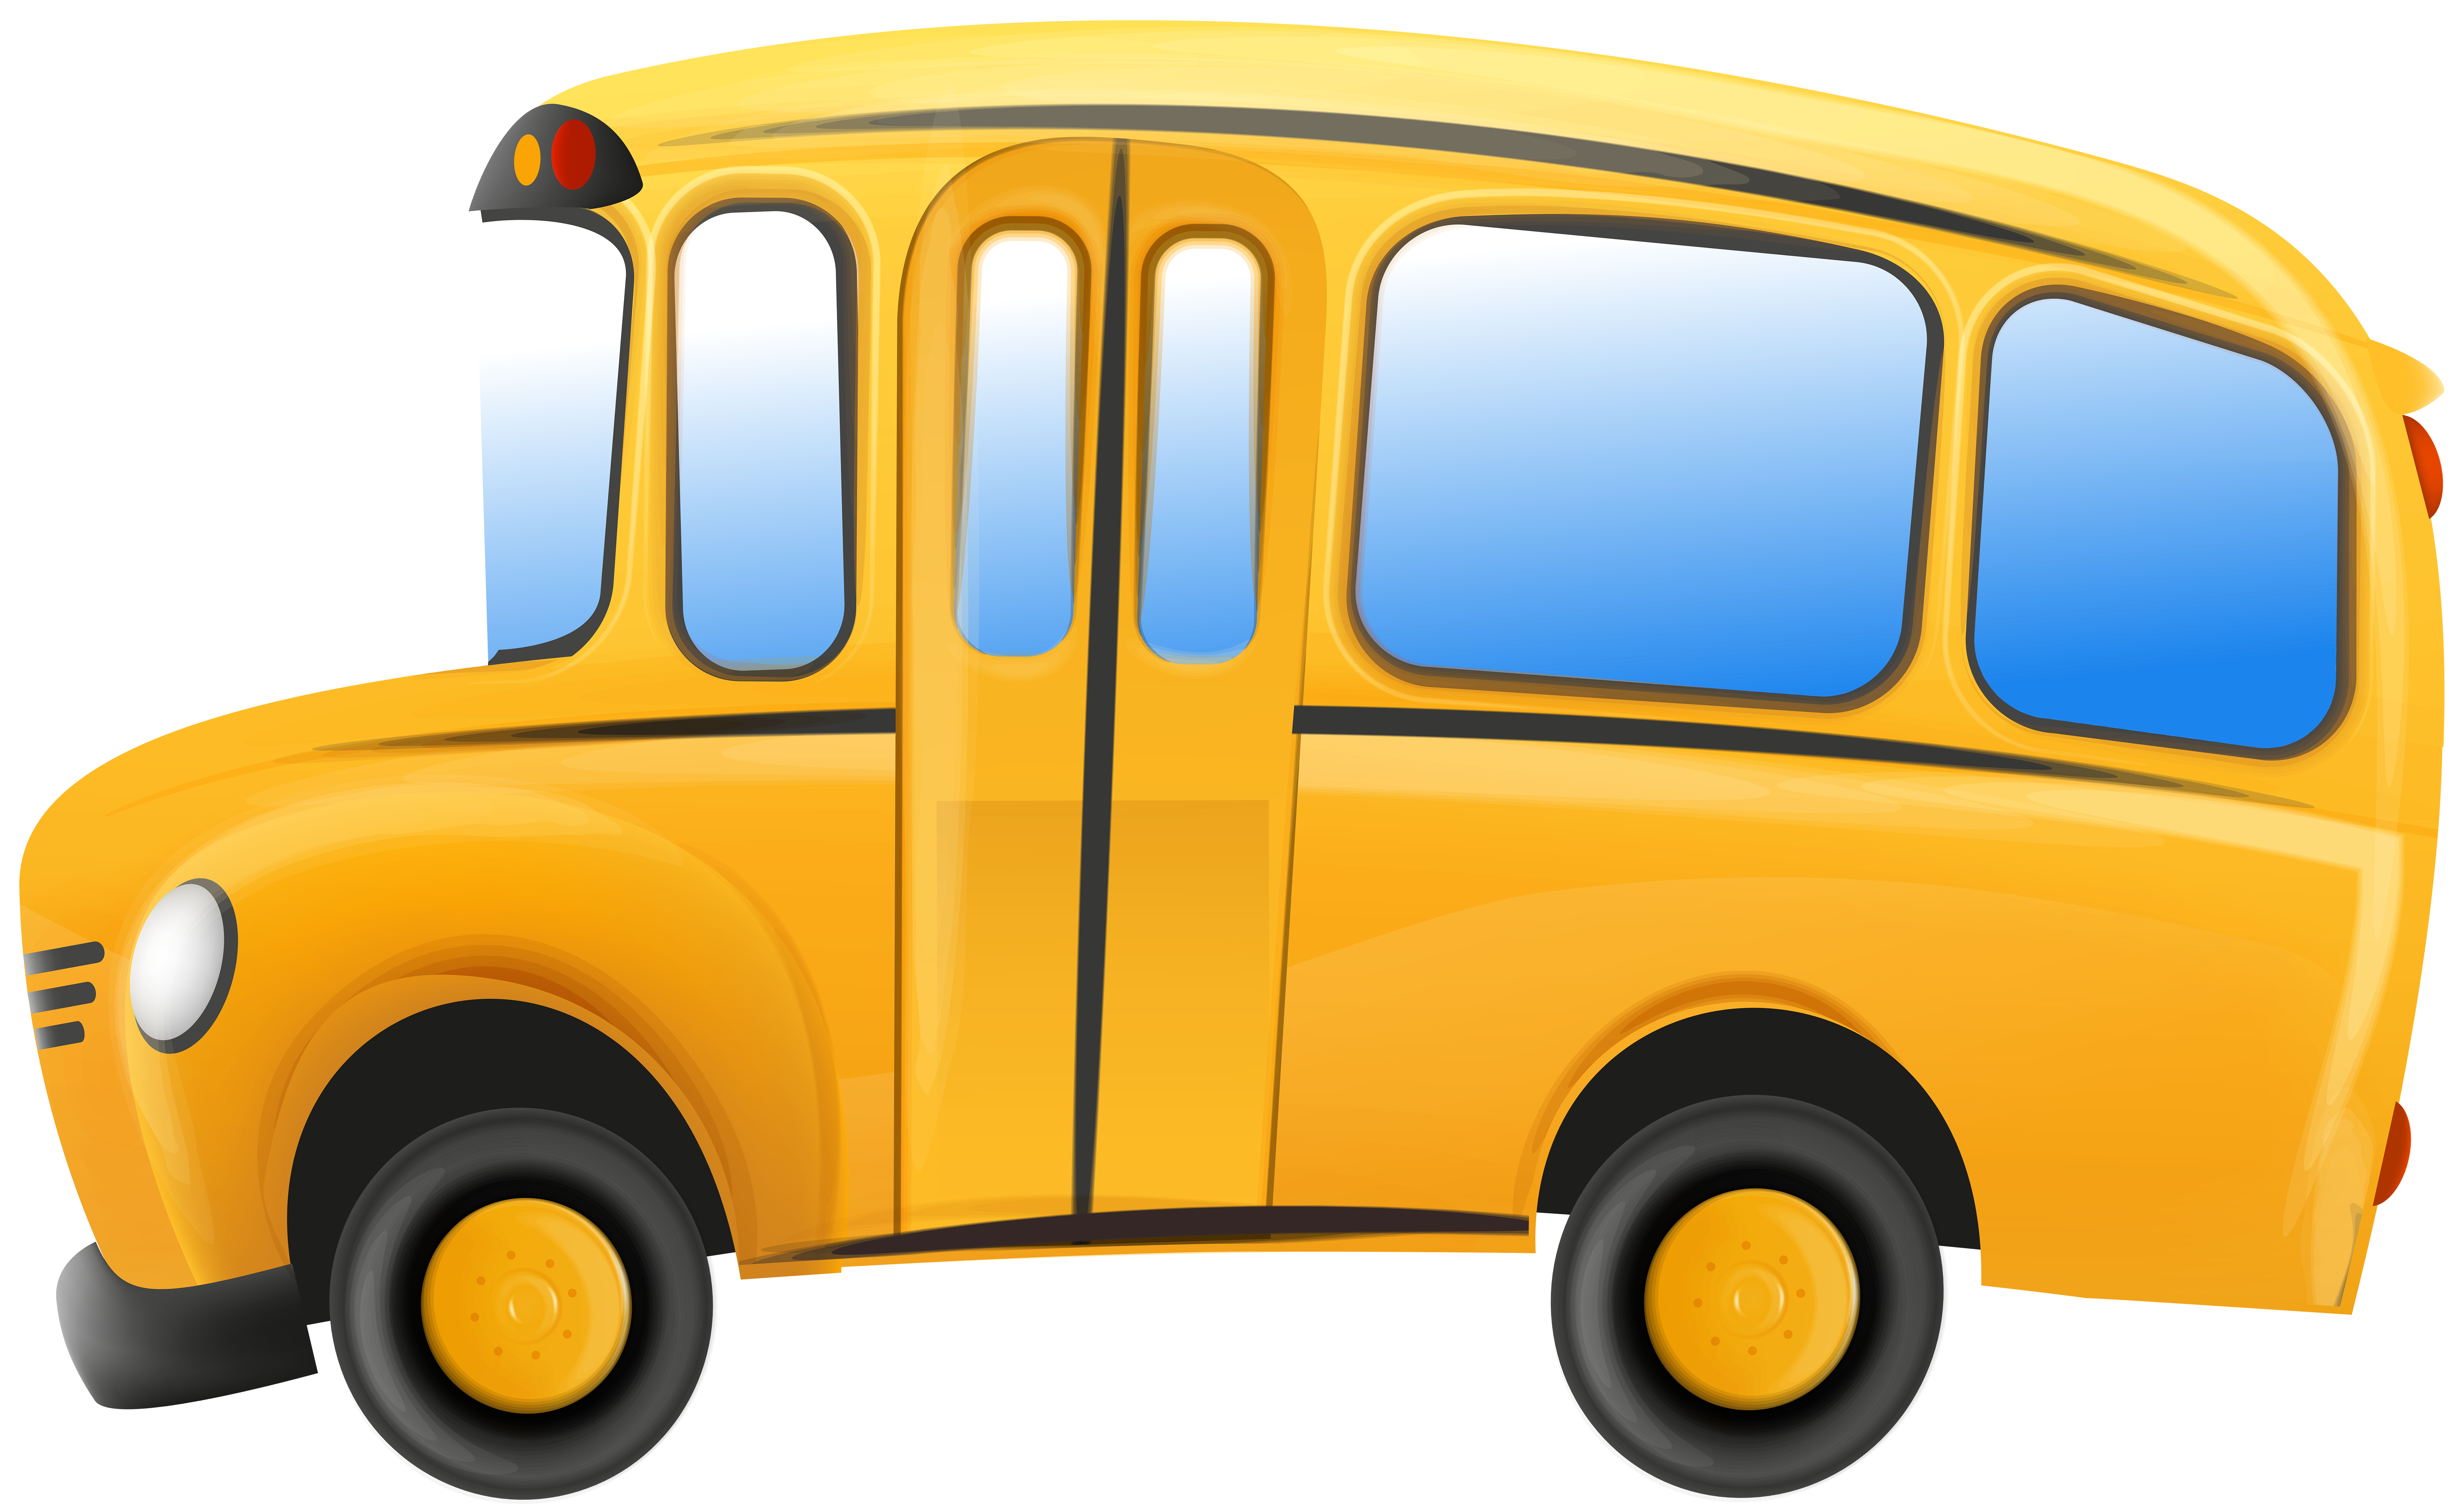 School bus clipart no background png download School Bus Transparent Clip Art Image | Gallery Yopriceville - High ... png download